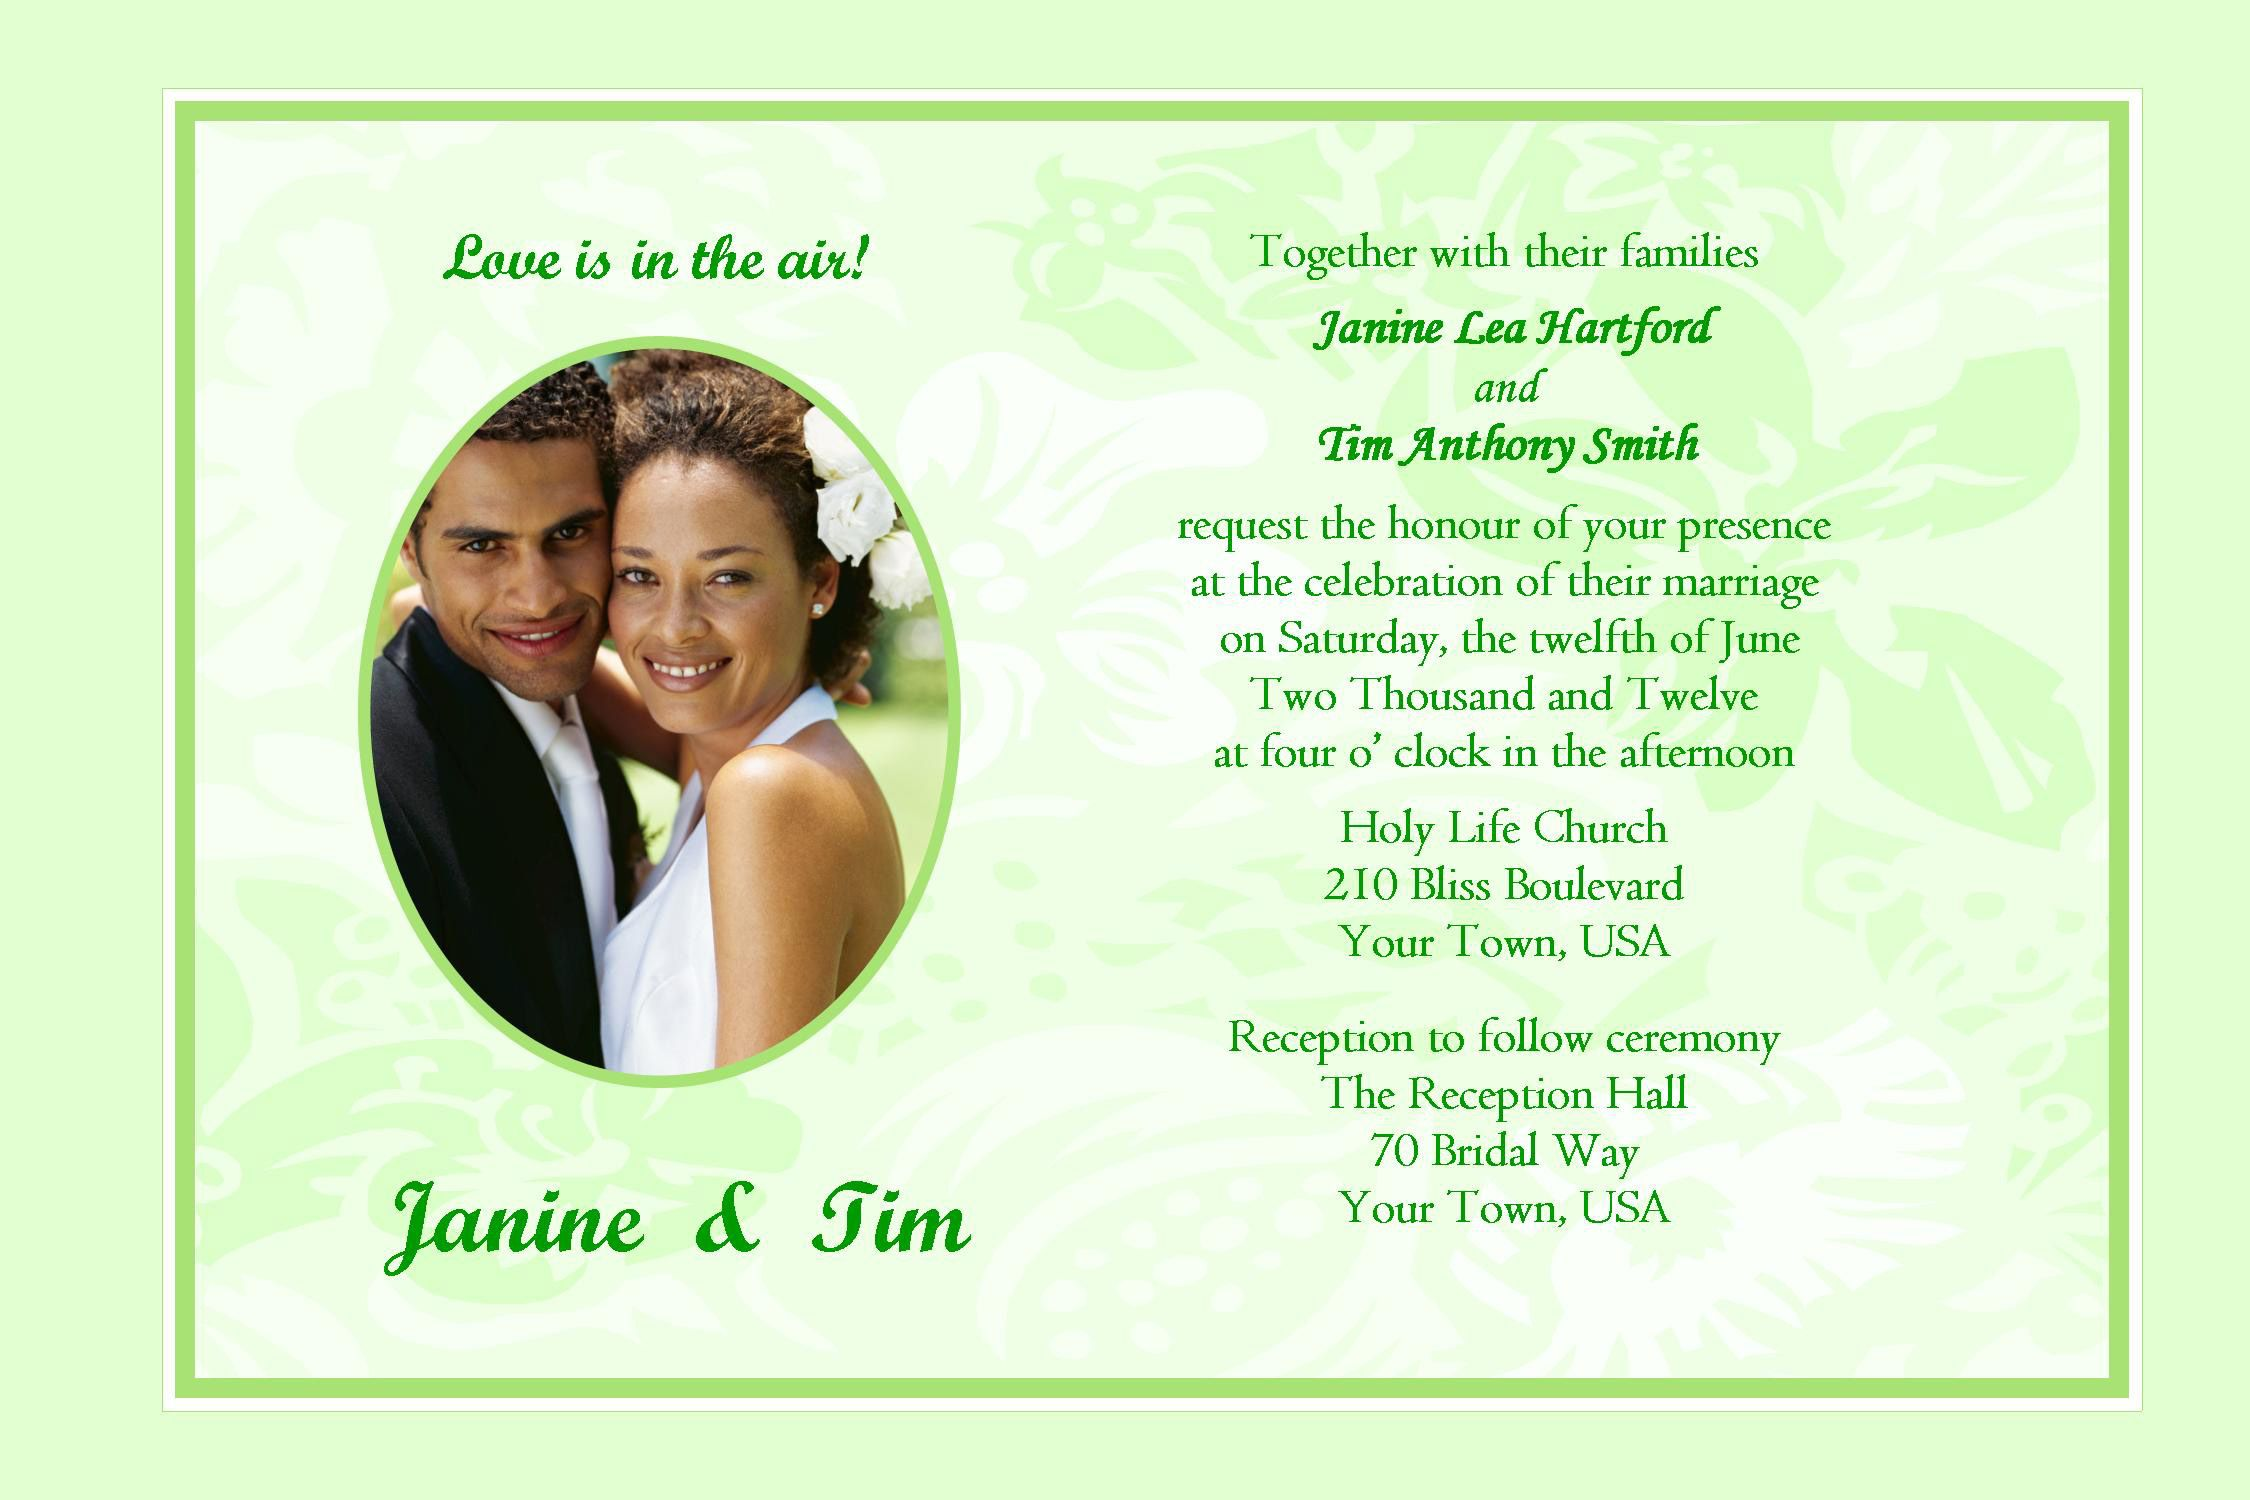 Stylish wedding card invitation sample wedding invitations samples explore wedding invitation wording and more stopboris